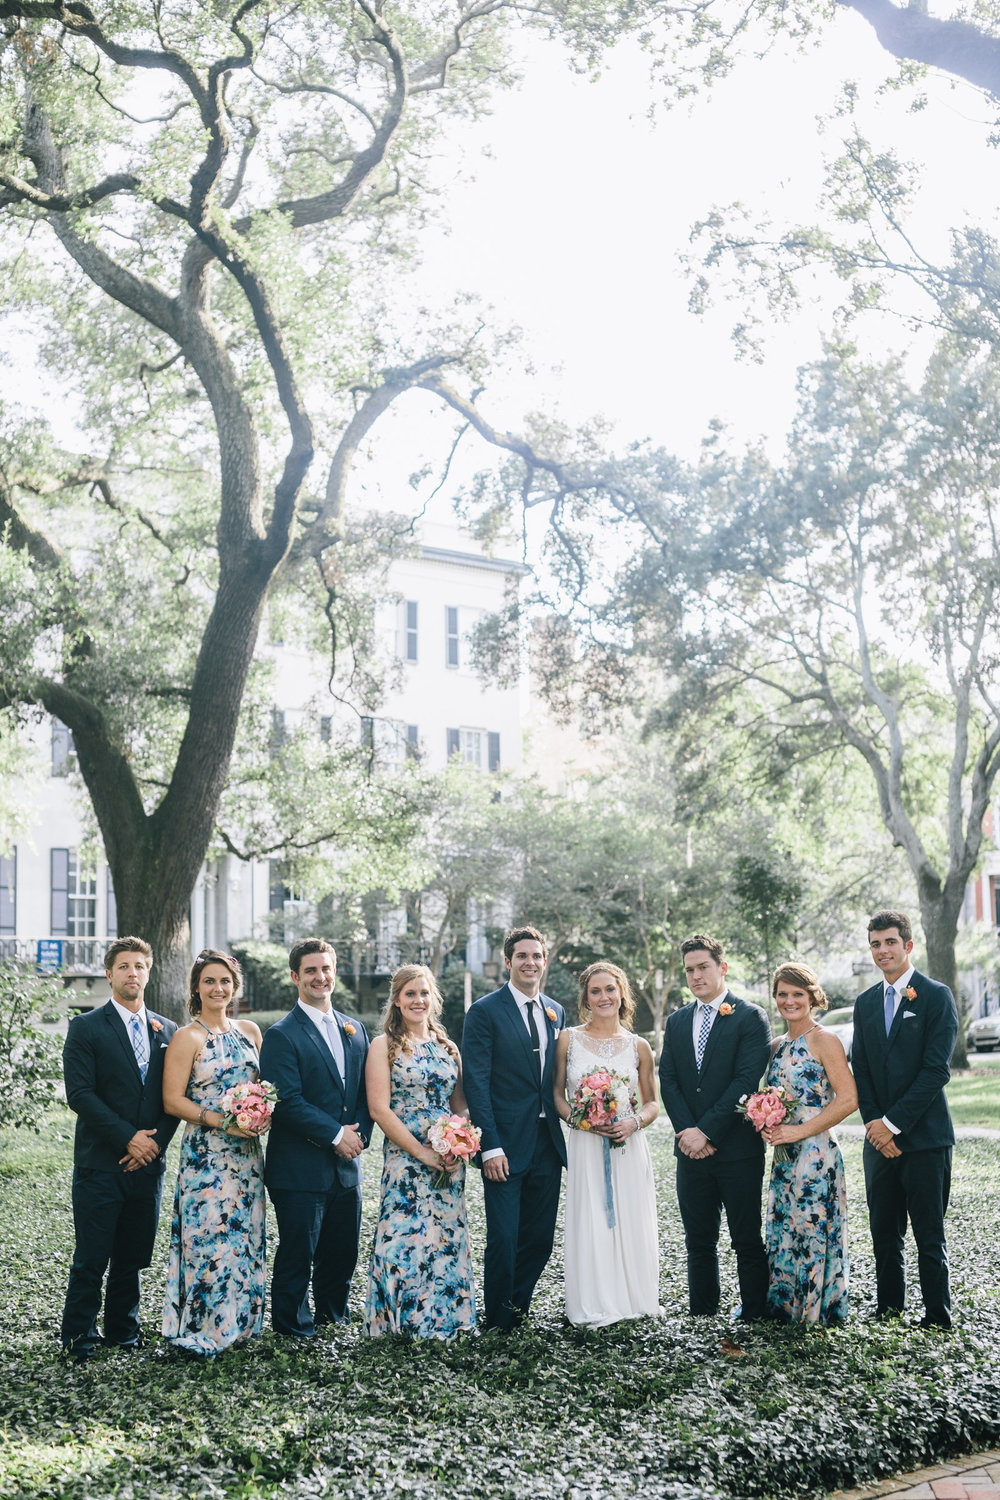 mackensey-alexander-photography-ivory-and-beau-bridal-boutique-from-this-day-forward-wedding-planning-sarah-seven-gwen-savannah-bridal-boutique-savannah-wedding-dresses-savannah-bridal-boutique-savannah-wedding-planner-savannah-weddings-42.jpg